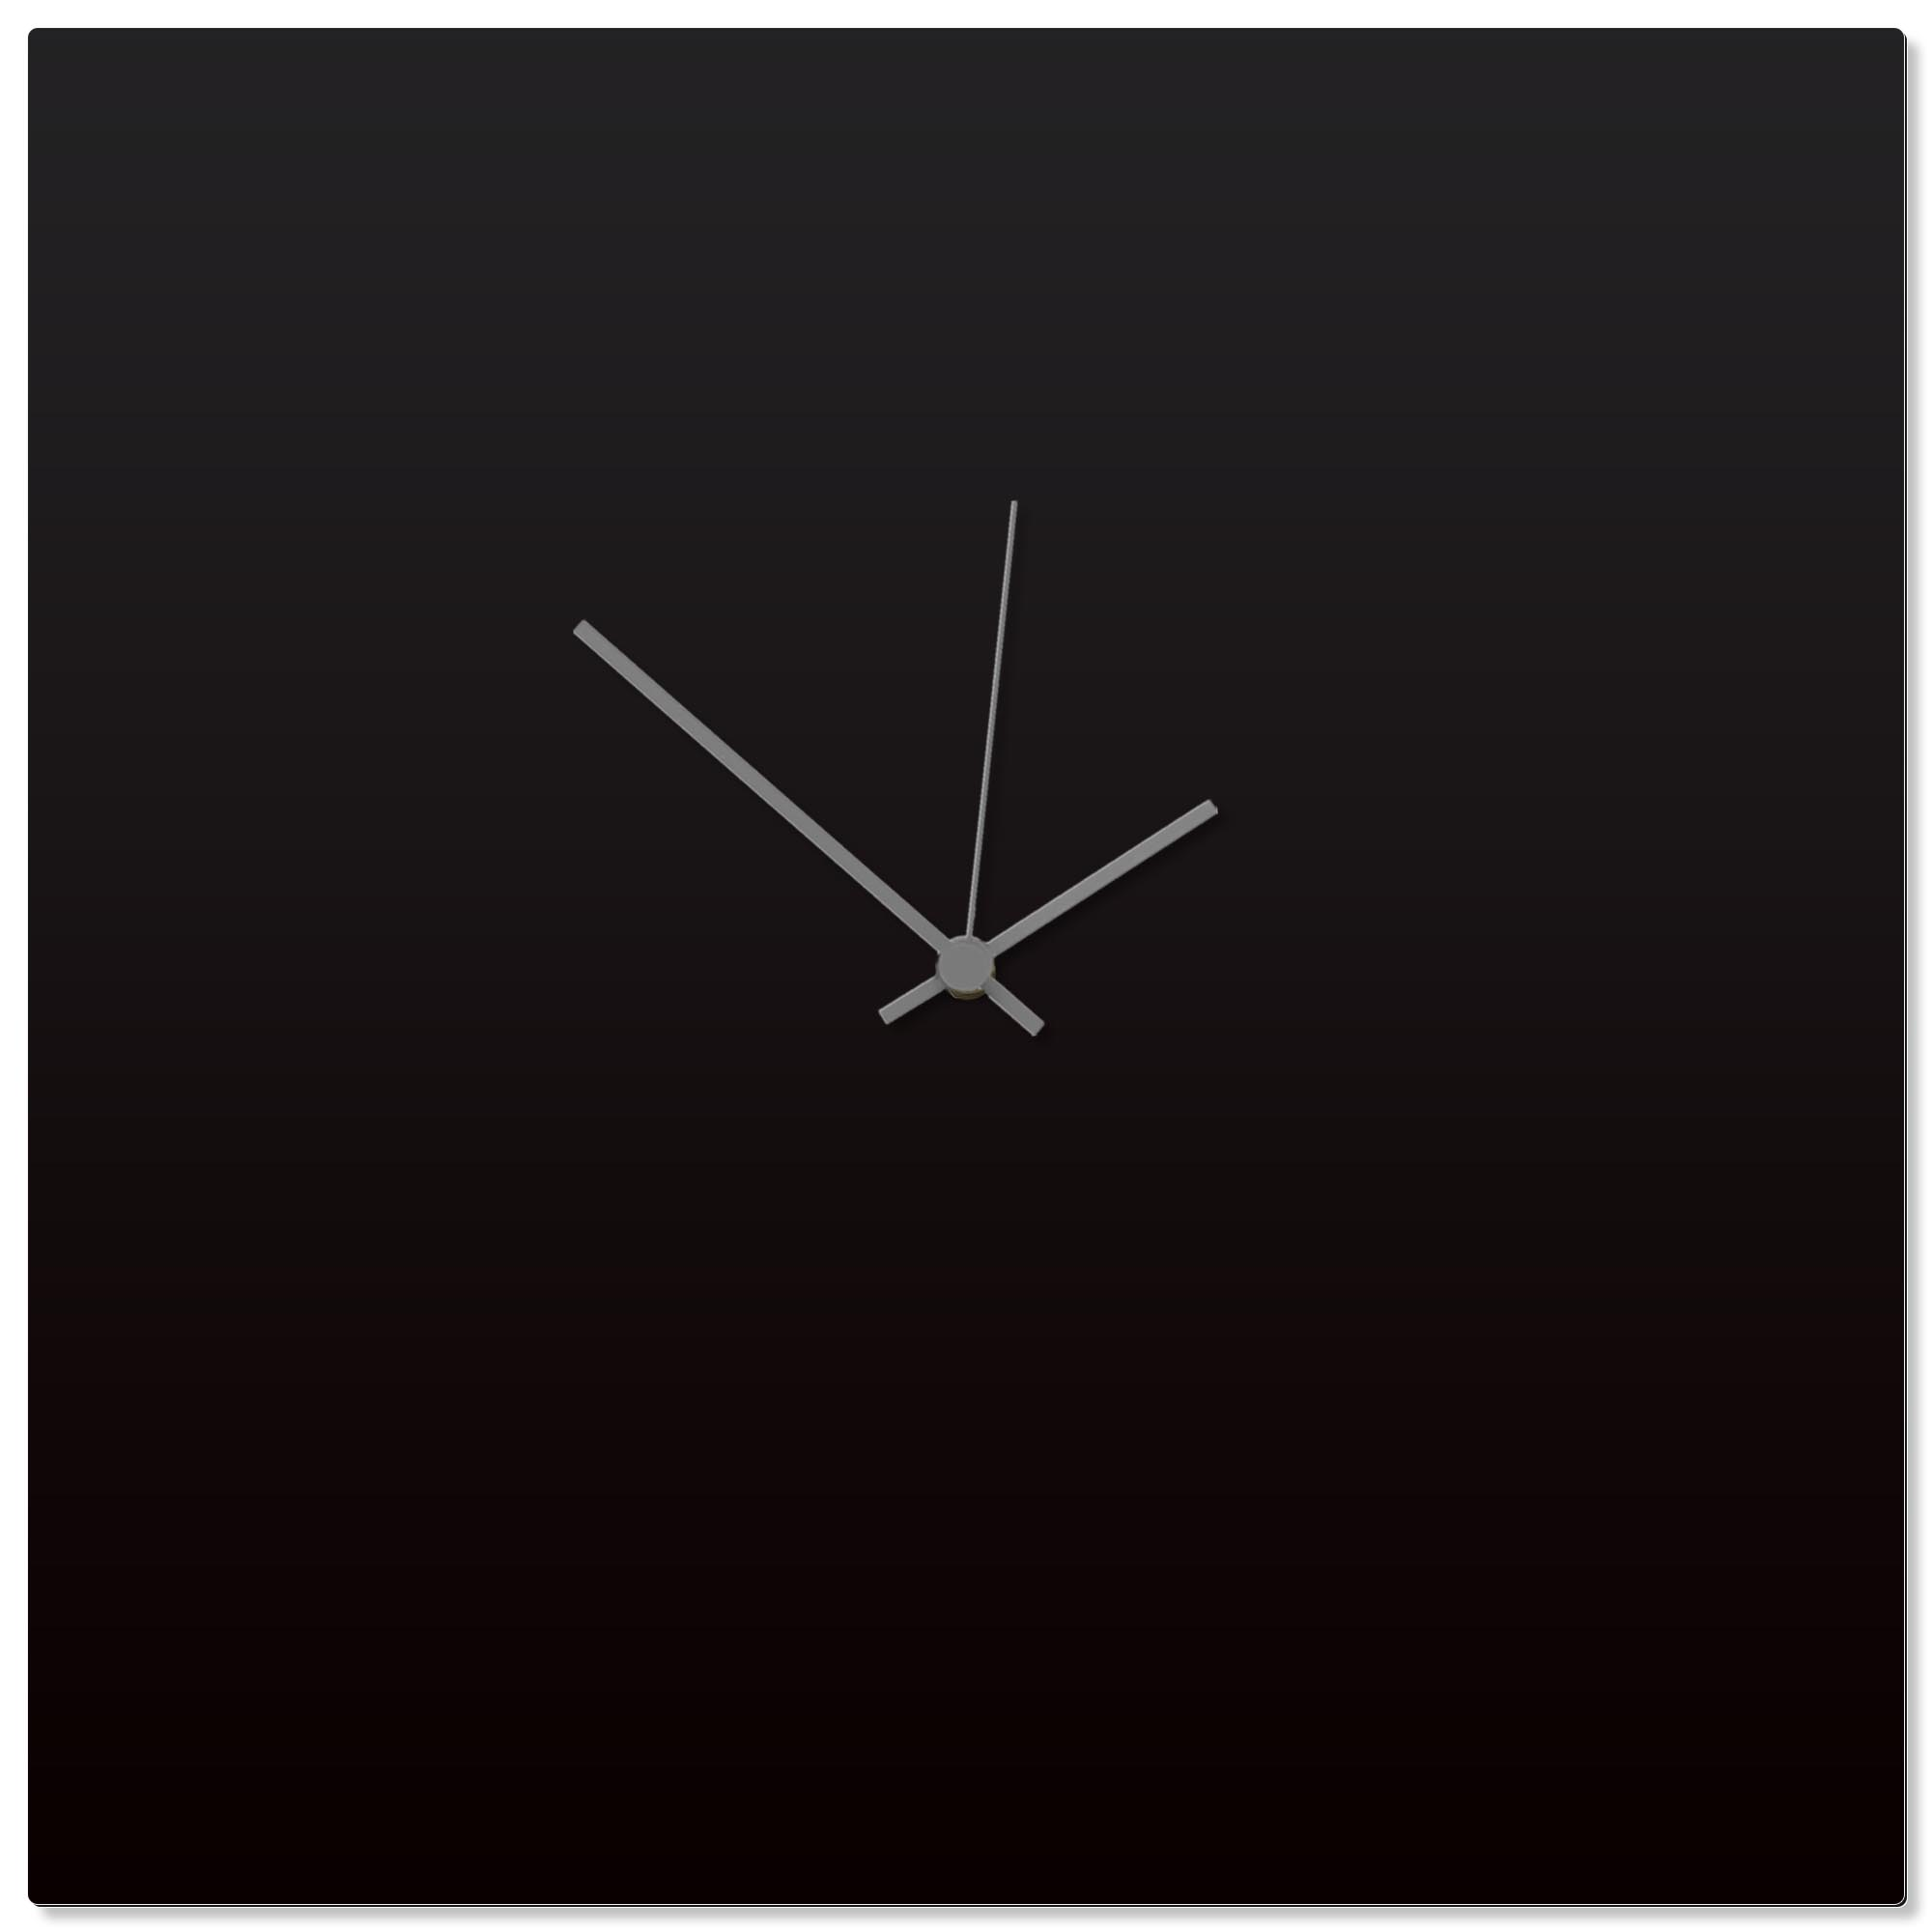 Blackout Grey Square Clock Large 23x23in. Aluminum Polymetal